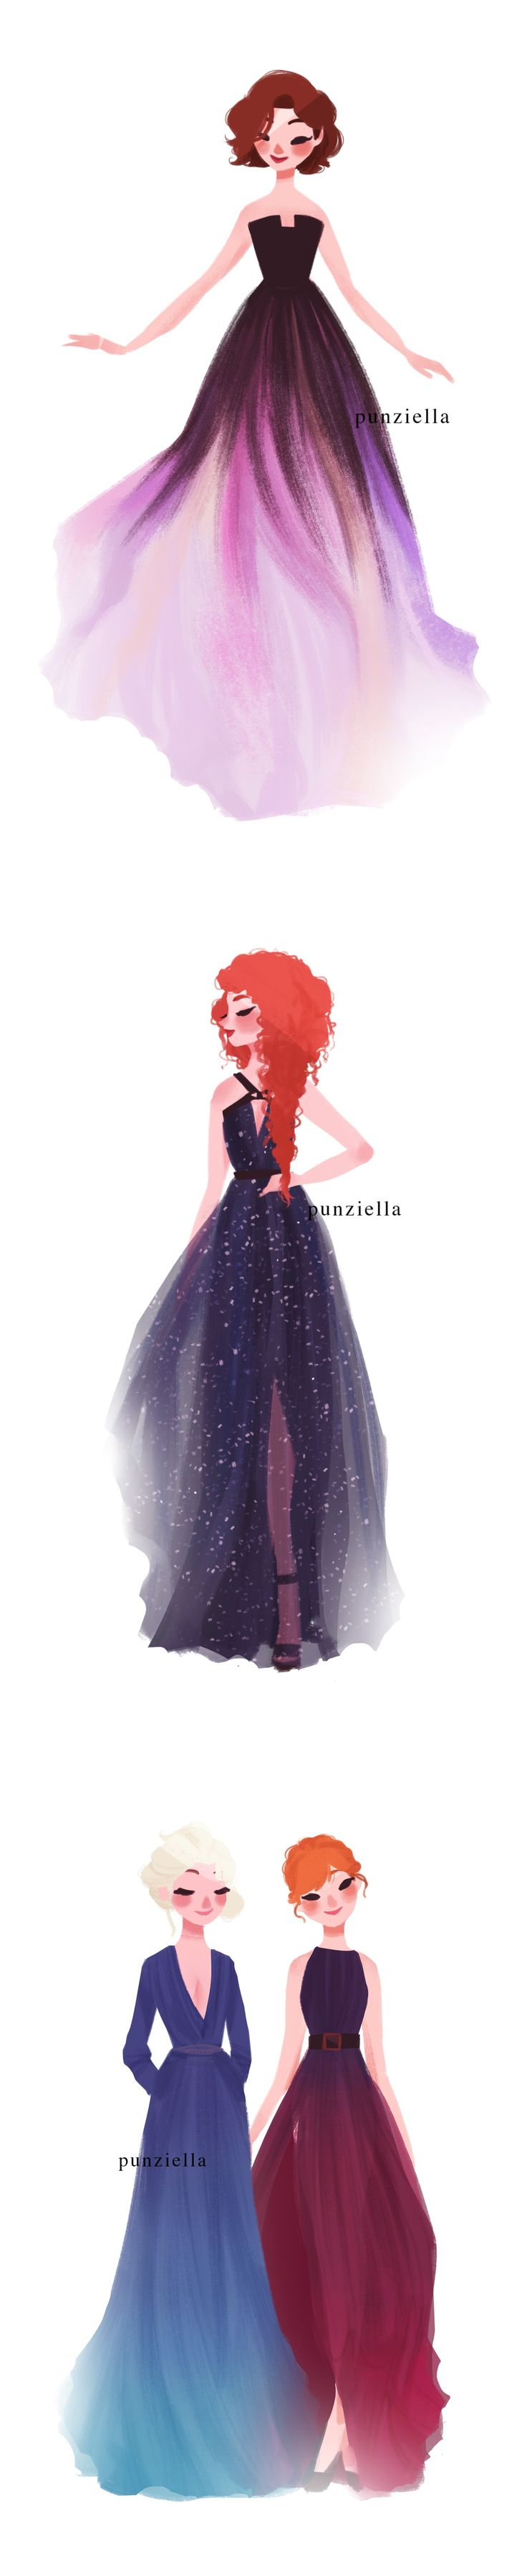 punziella: because I saw this frickin' post (http://boredpanda.tumblr.com/post/118436051945/fashion-inspired-by-nature-in-diptychs-by-liliya) like 10 times in a row, I decided to draw the four seasons wearing the dresses ;P